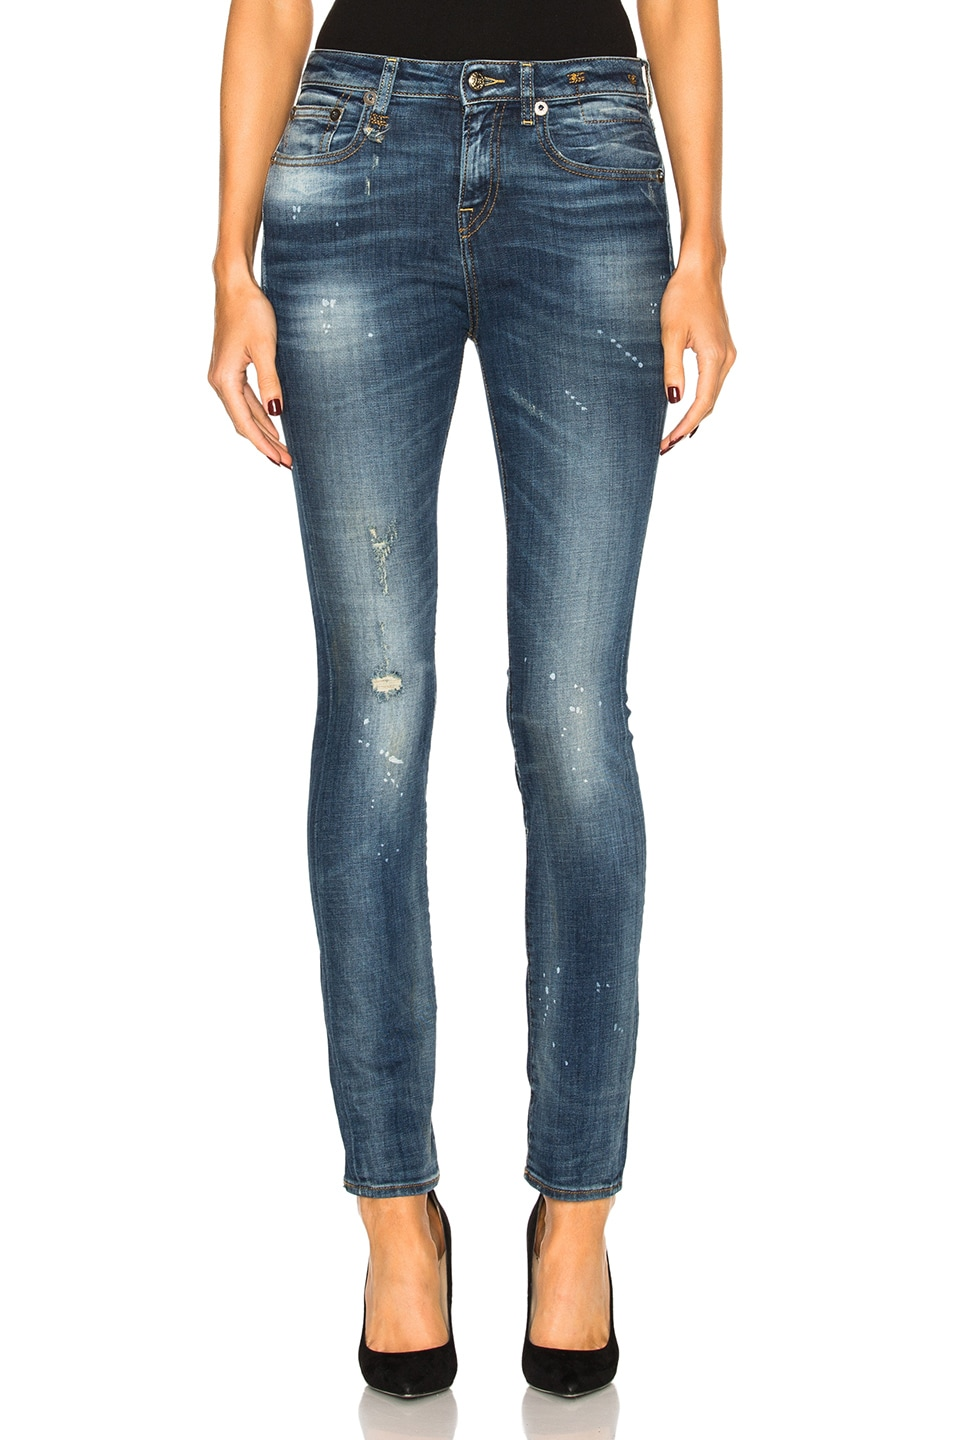 Jenny Washed Blue mid rise skinny jeans R13 tgSeW